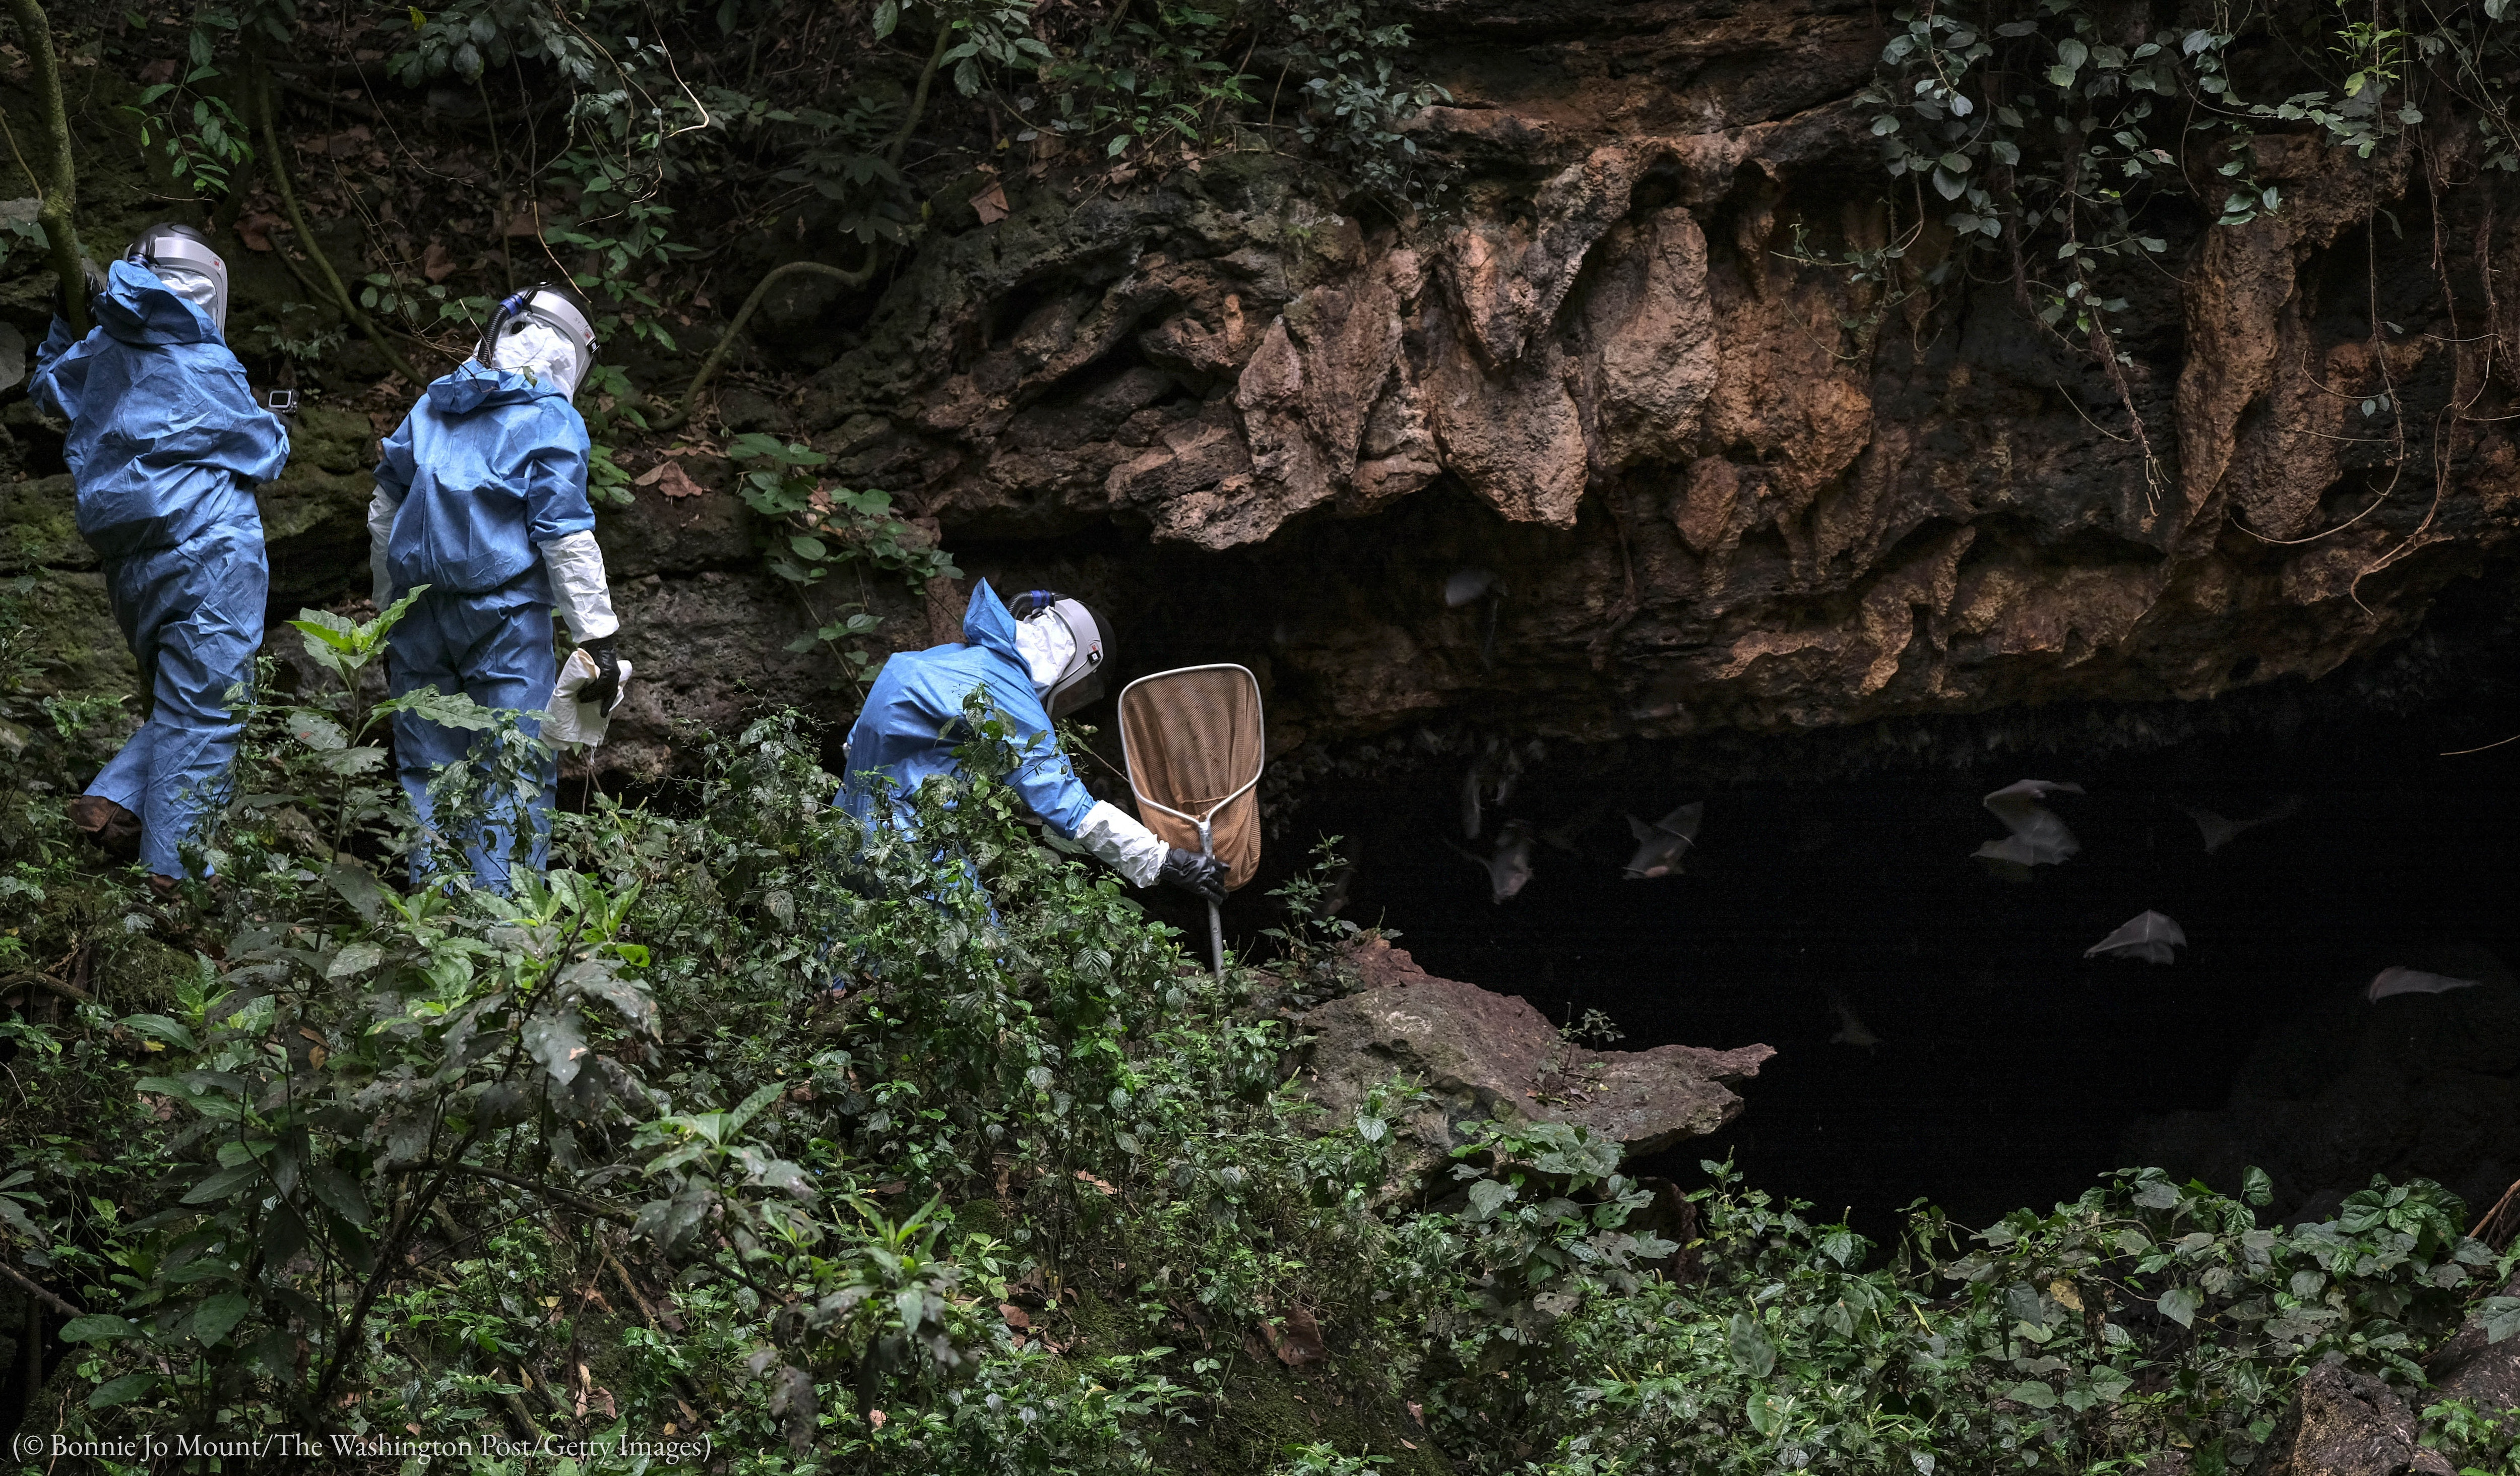 Three people in hazmat suits, one with butterfly net, at cave entrance (© Bonnie Jo Mount/The Washington Post/Getty Images)